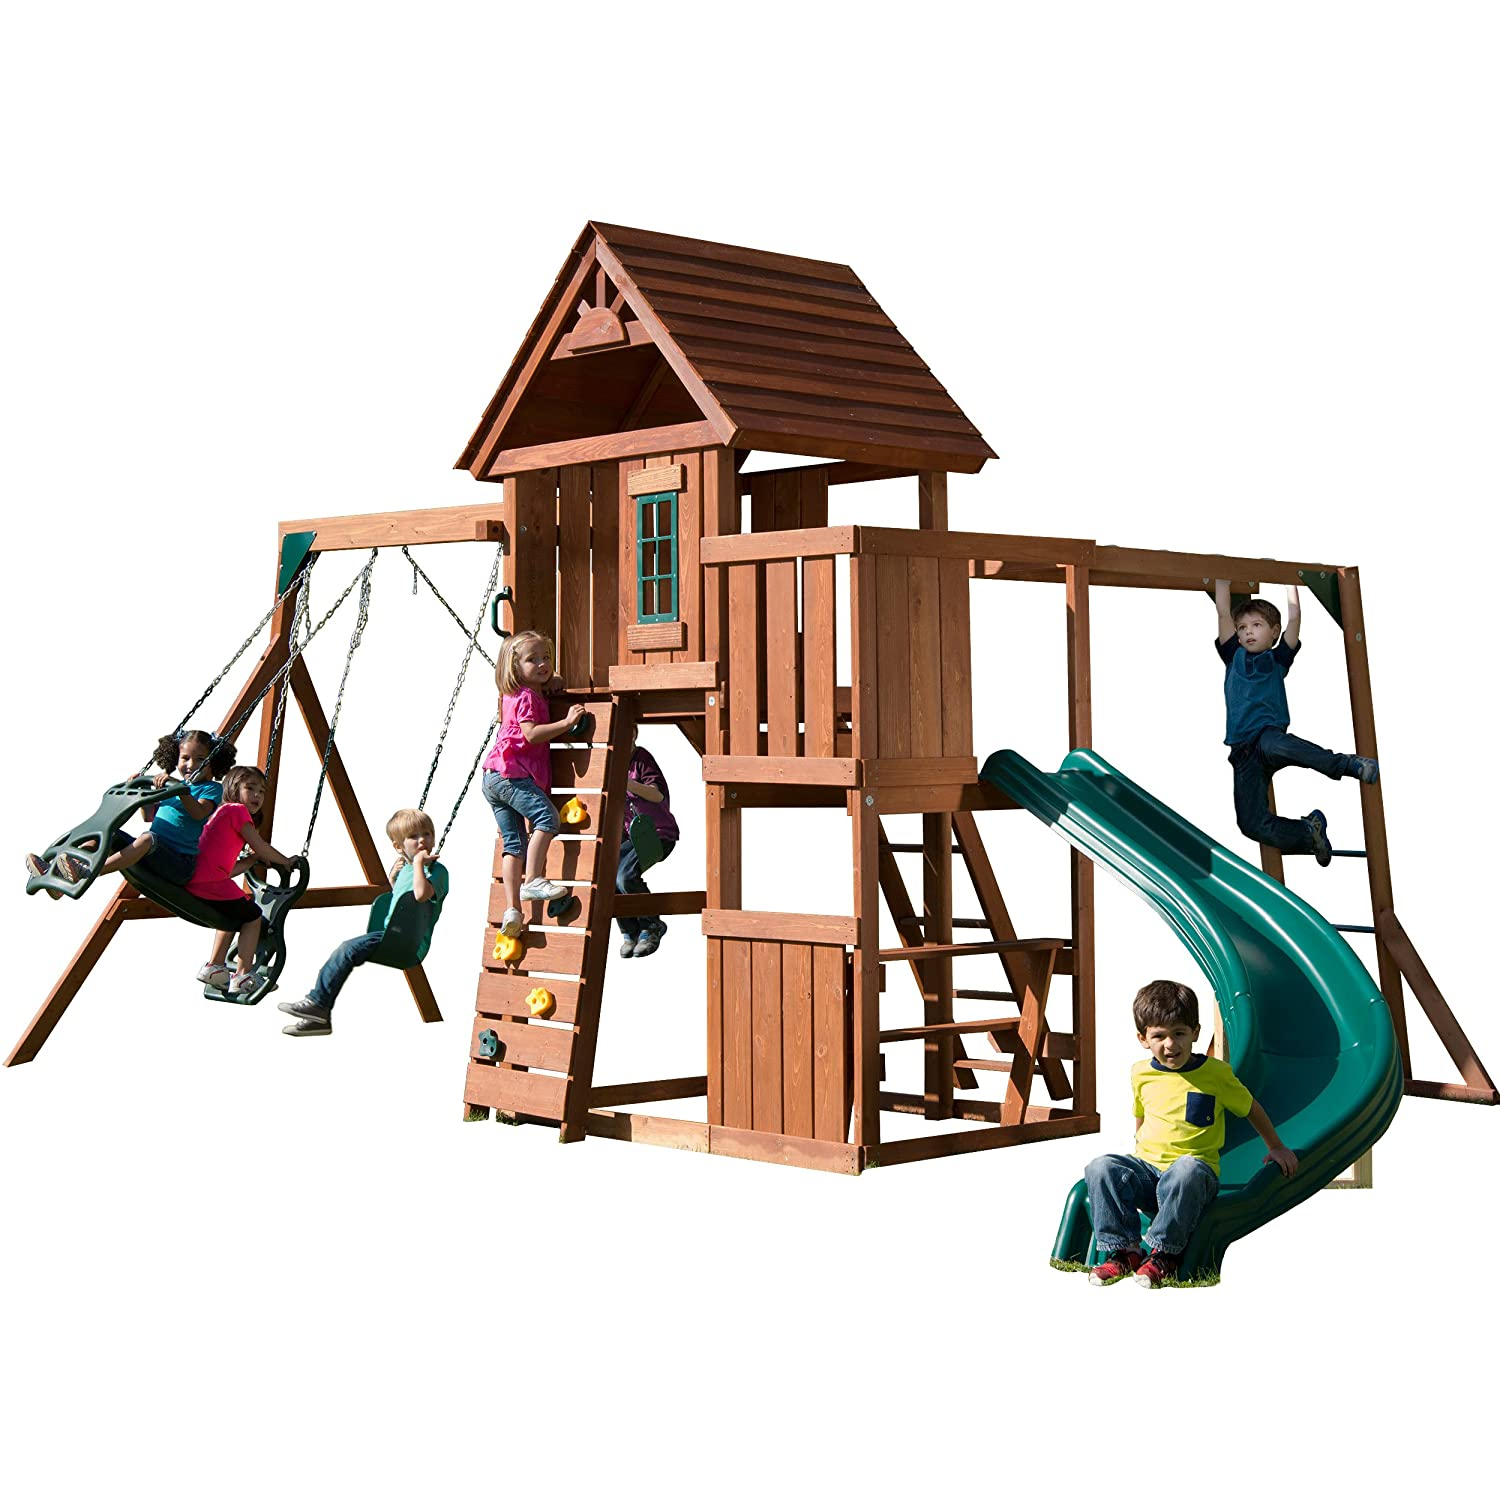 Top 7 Best Swing Sets for Older Kids Reviews in 2020 6